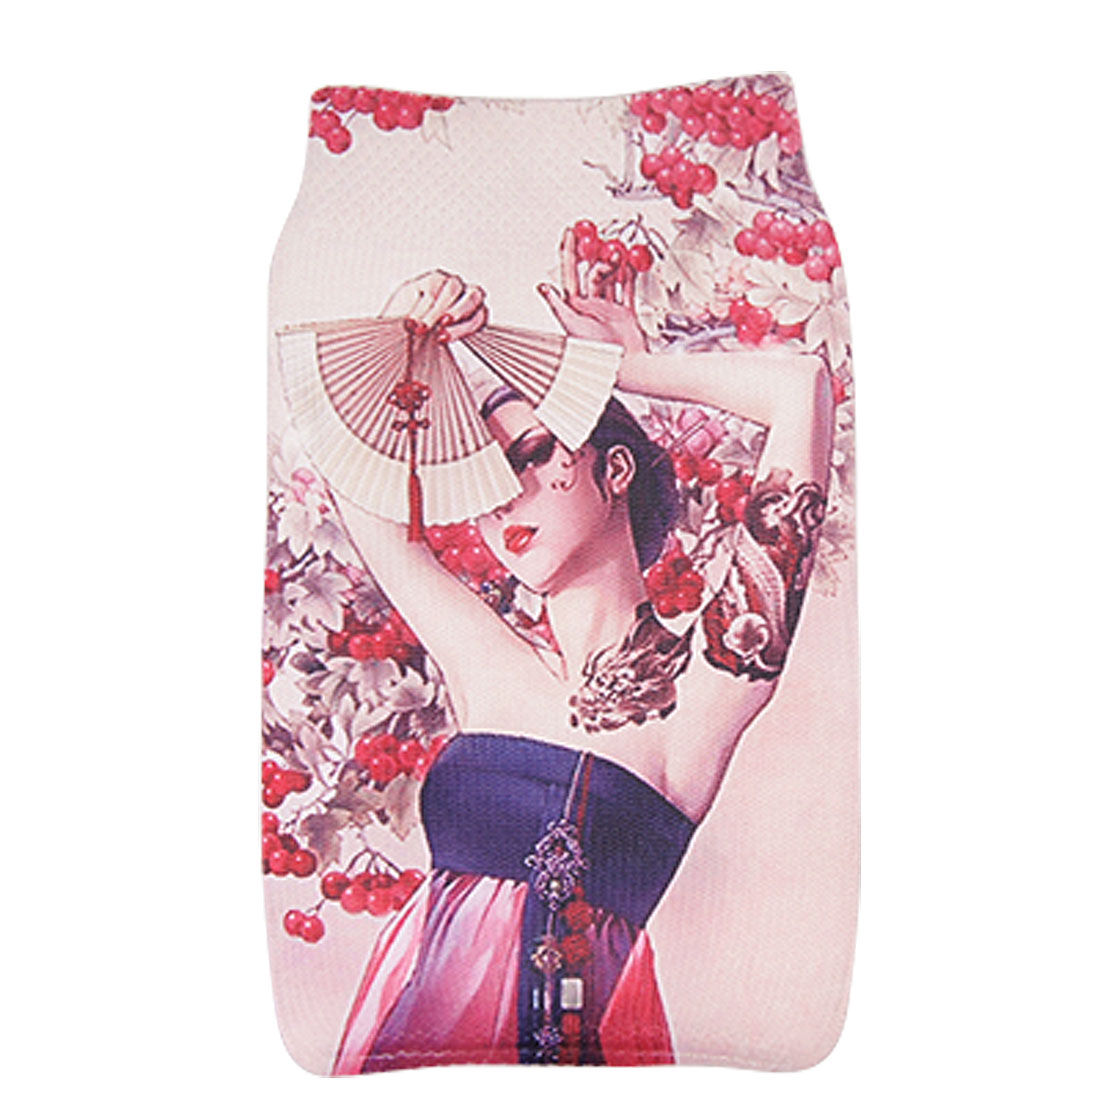 Lady w Fan Pattern Stretchy Fabric Sock Cover for Mobile Phone